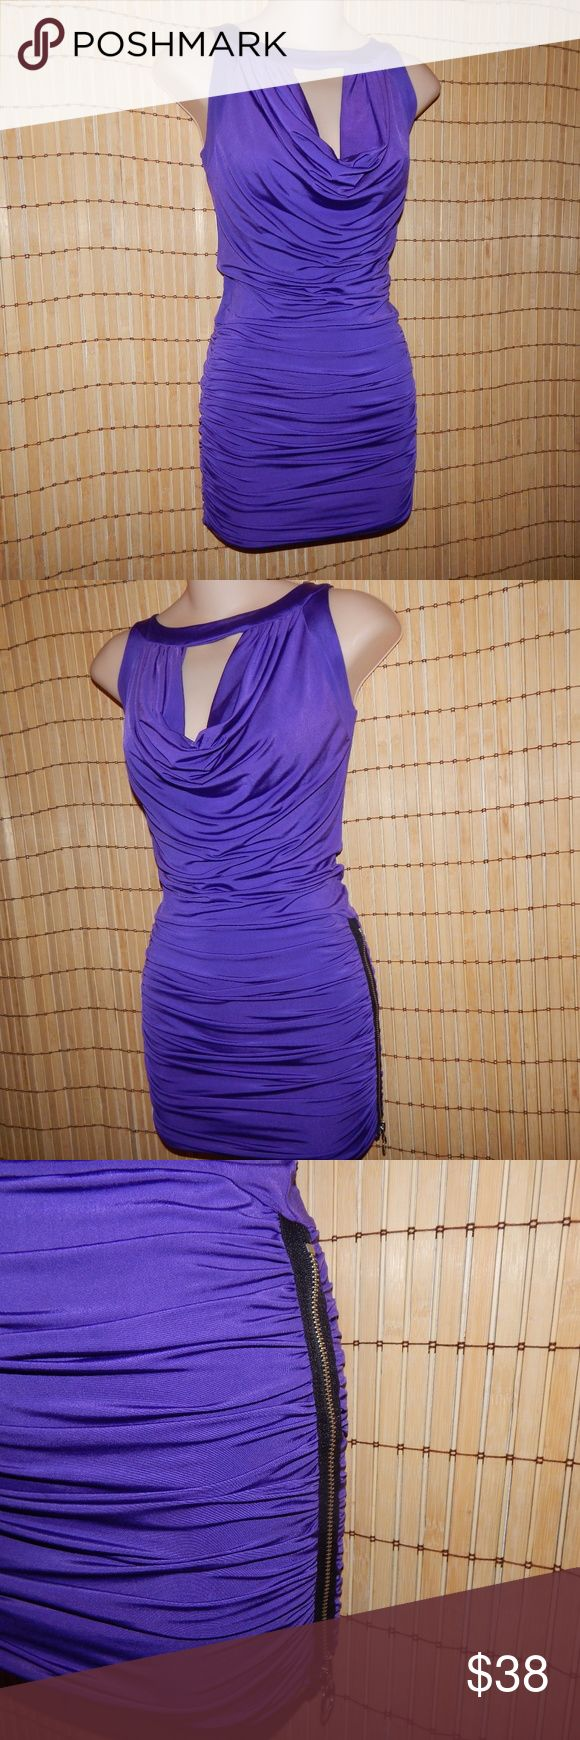 Frederick's of Hollywood purple dress Sexy! Slinky with a bold zipper down one thigh. You will turn heads in this one! This is a nice grape purple. Excellent condition. Bodycon. Frederick's of Hollywood Dresses Mini